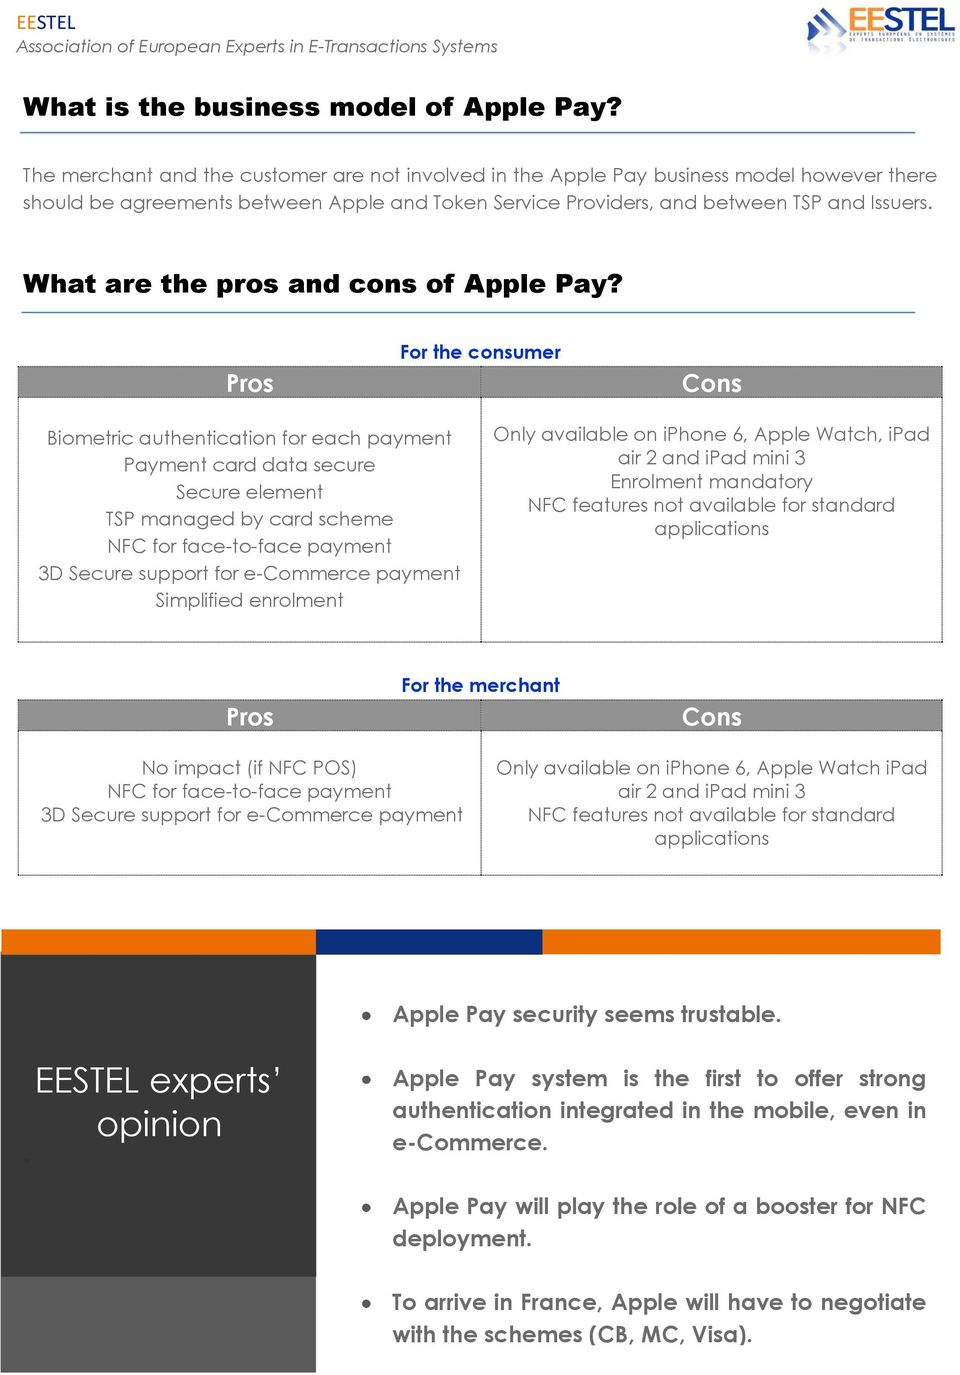 What are the pros and cons of Apple Pay?